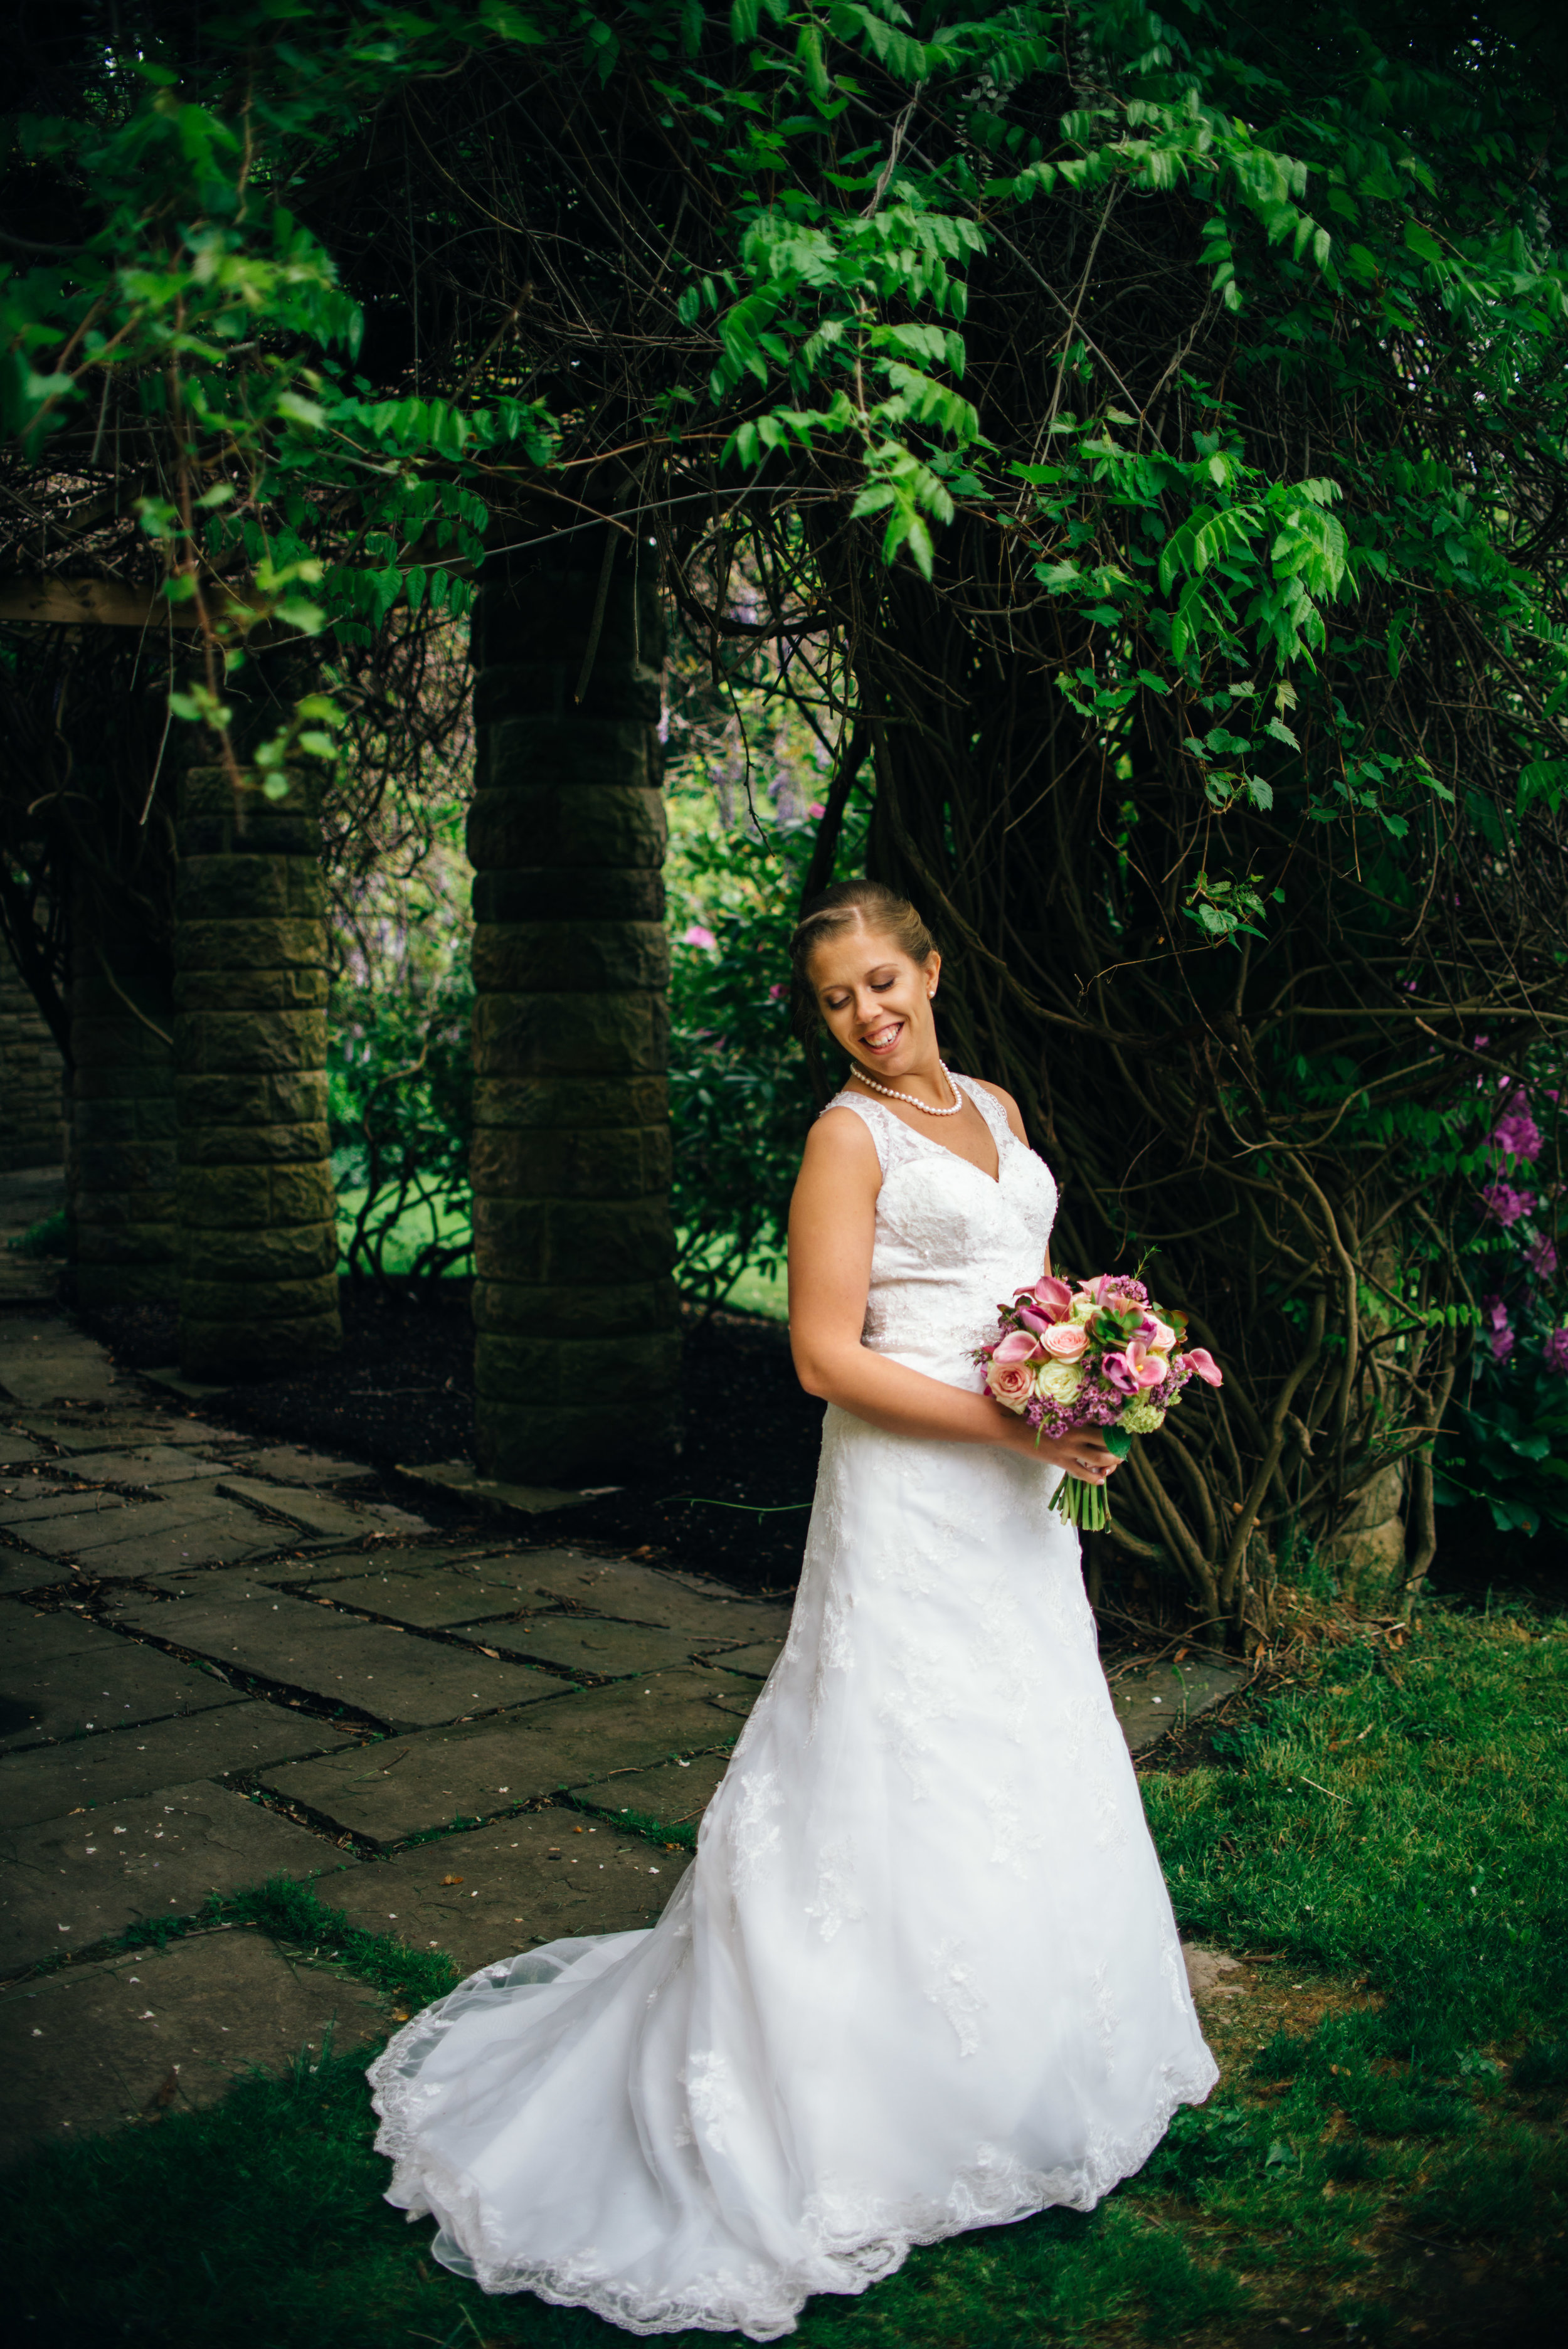 Bride standing in monastery garden in front of blooming arbor, looking over shoulder at her lace wedding gown train